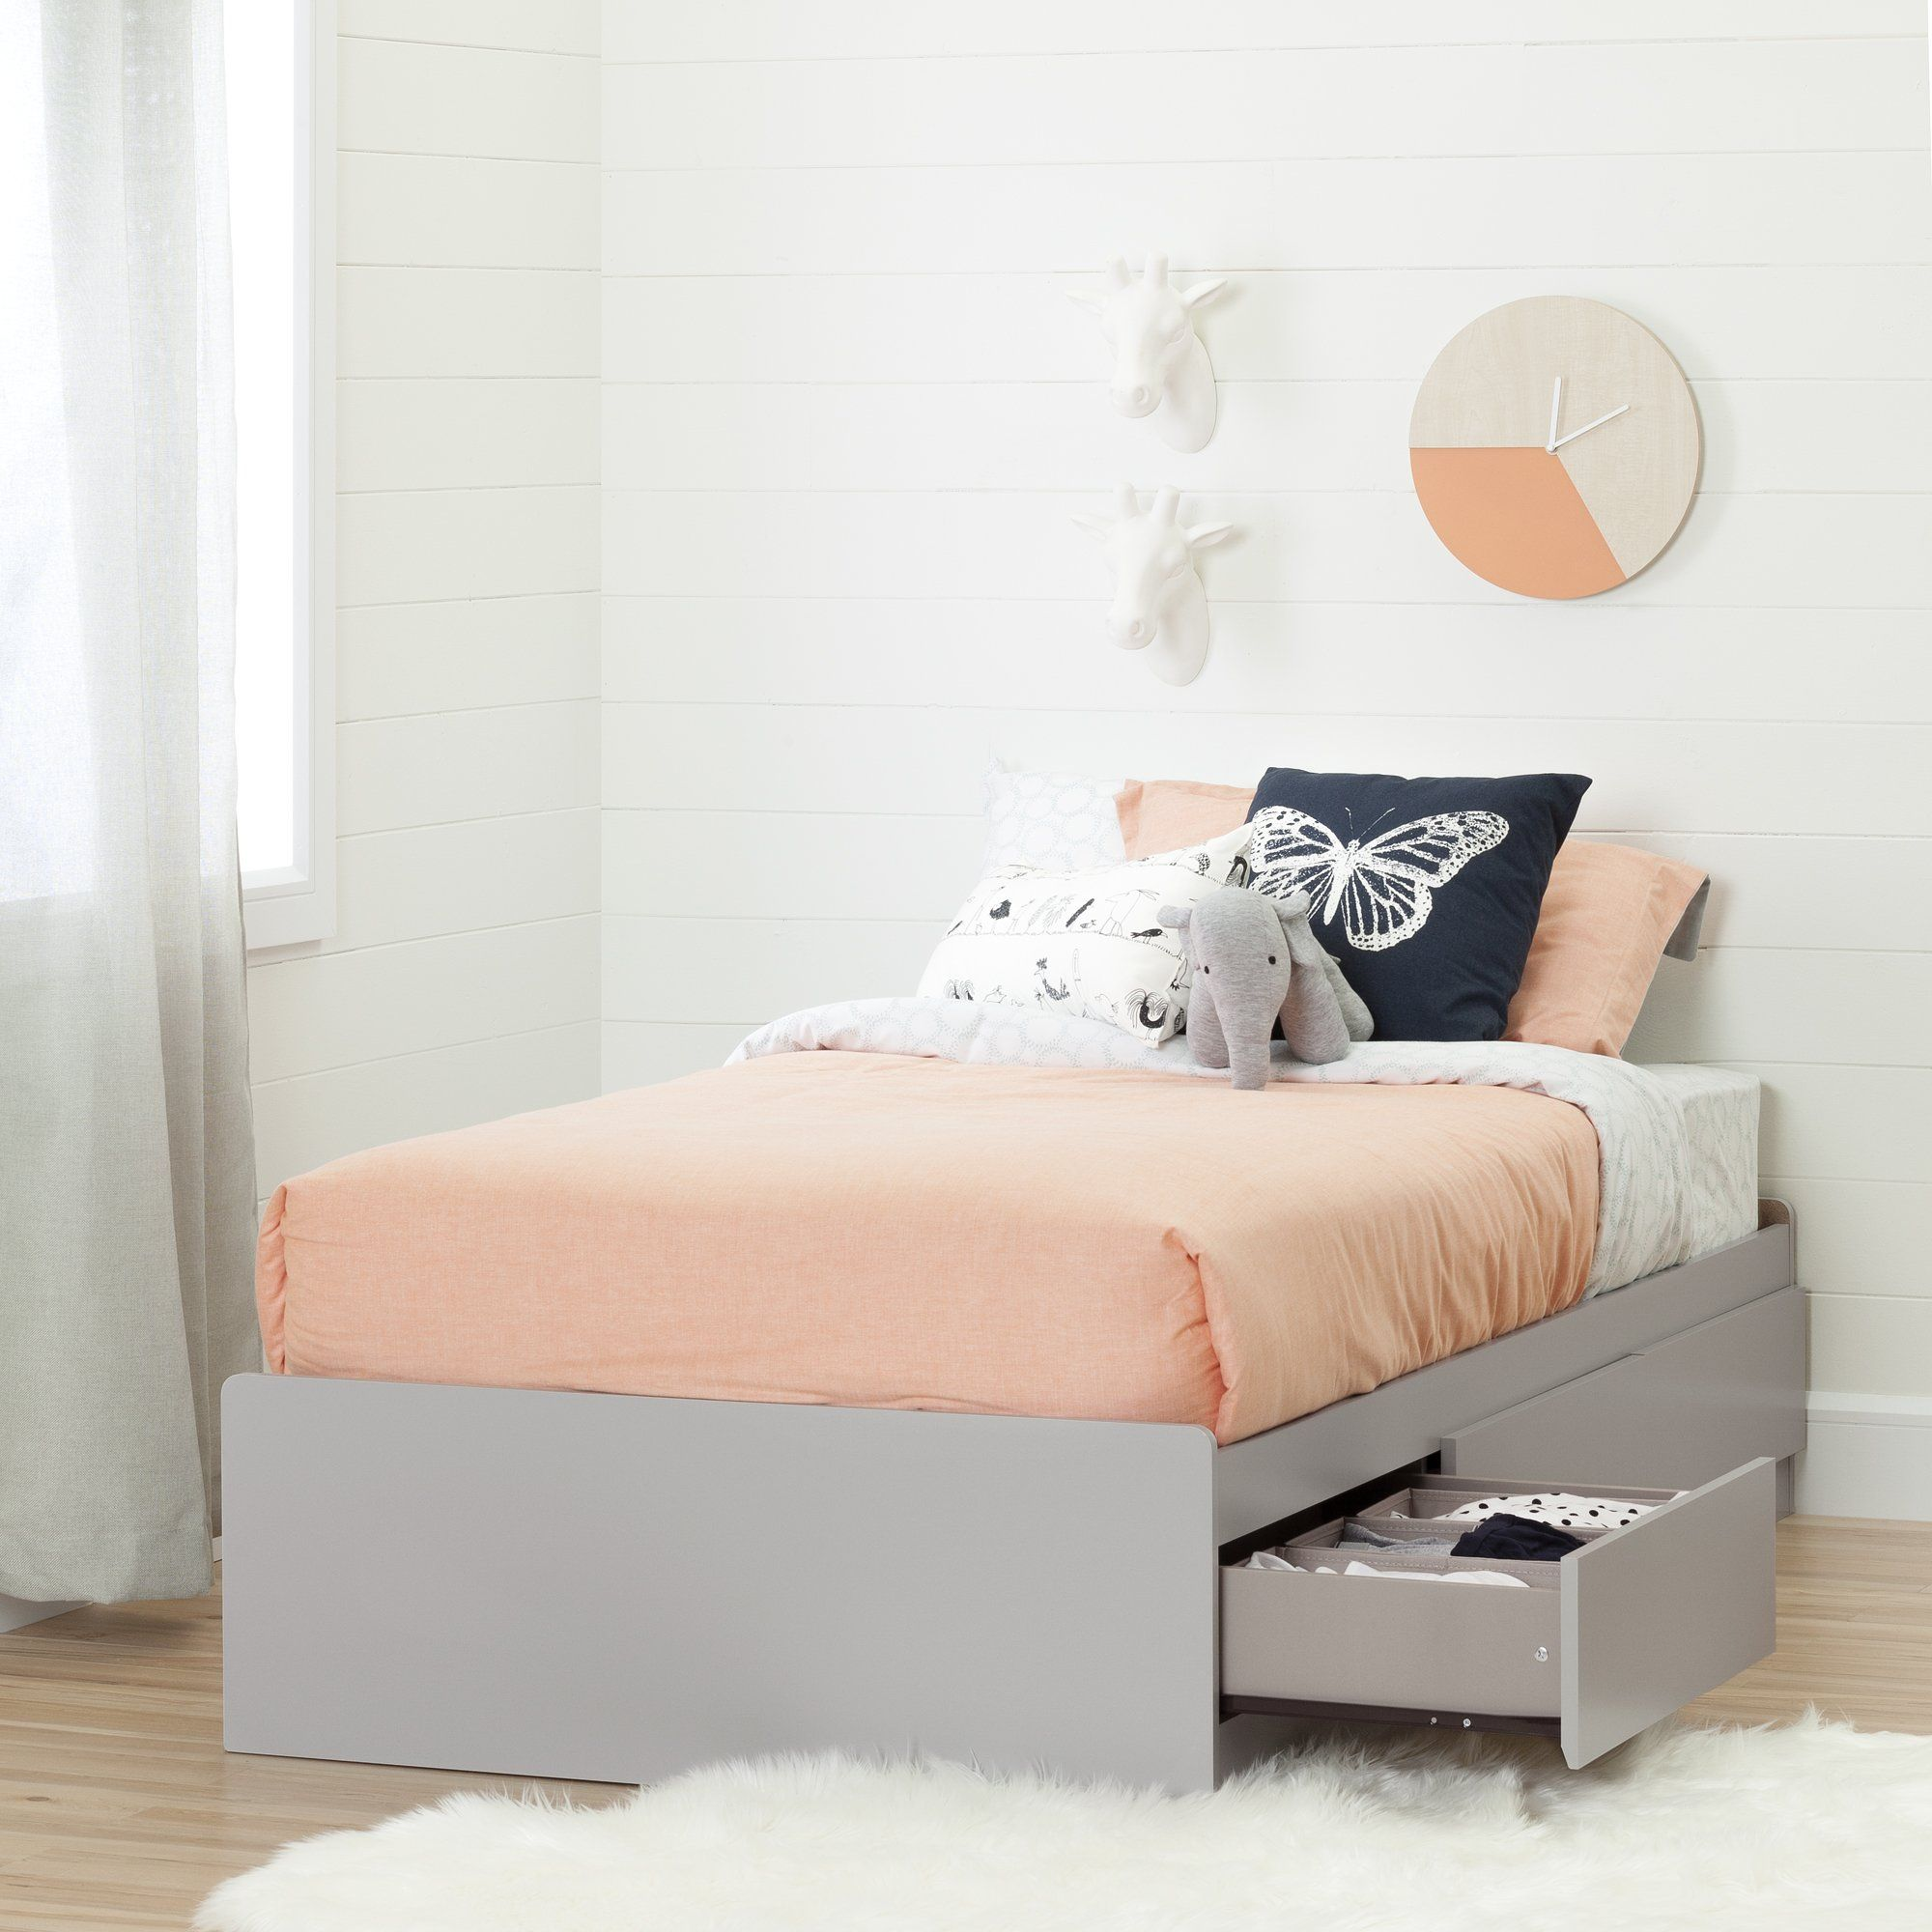 Cookie Twin Size Mate's and Captain's Bed with Drawers